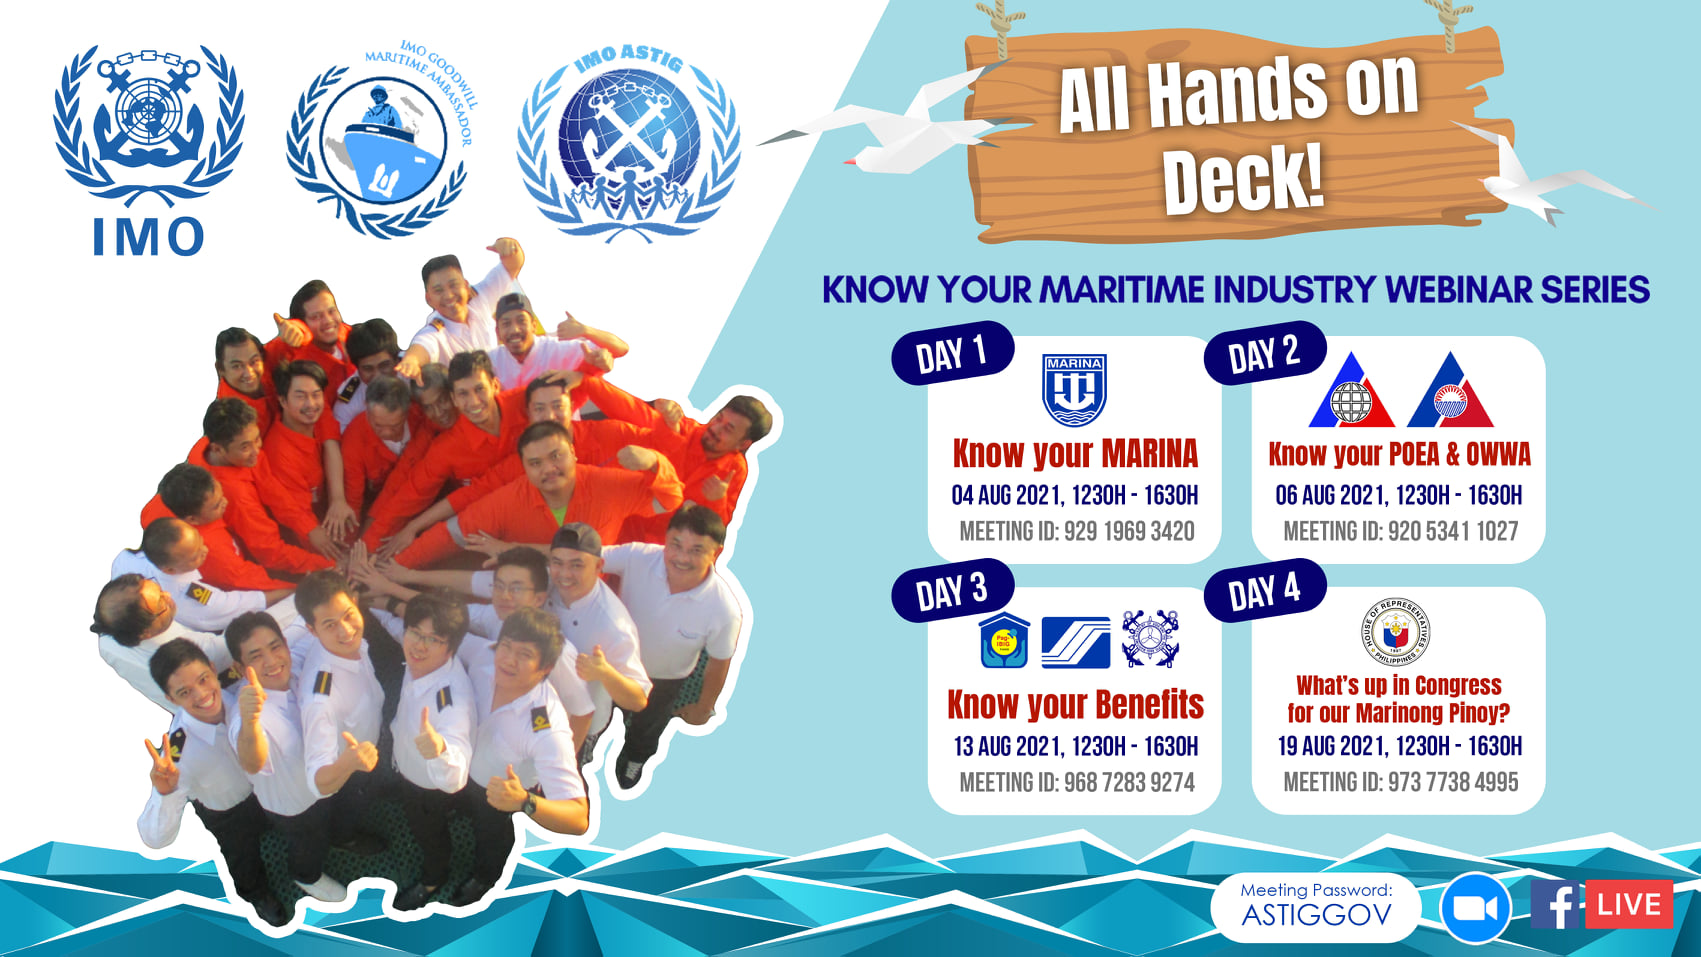 """IMO-ASTIG are conducting a series of Webinars via Zoom entitled """"Know Your Maritime Industry"""" and with an accompanying theme: """"ALL HANDS ON DECK!  MARINONG PINOY:  BE INFORMED! BE FUTURE READY!"""""""